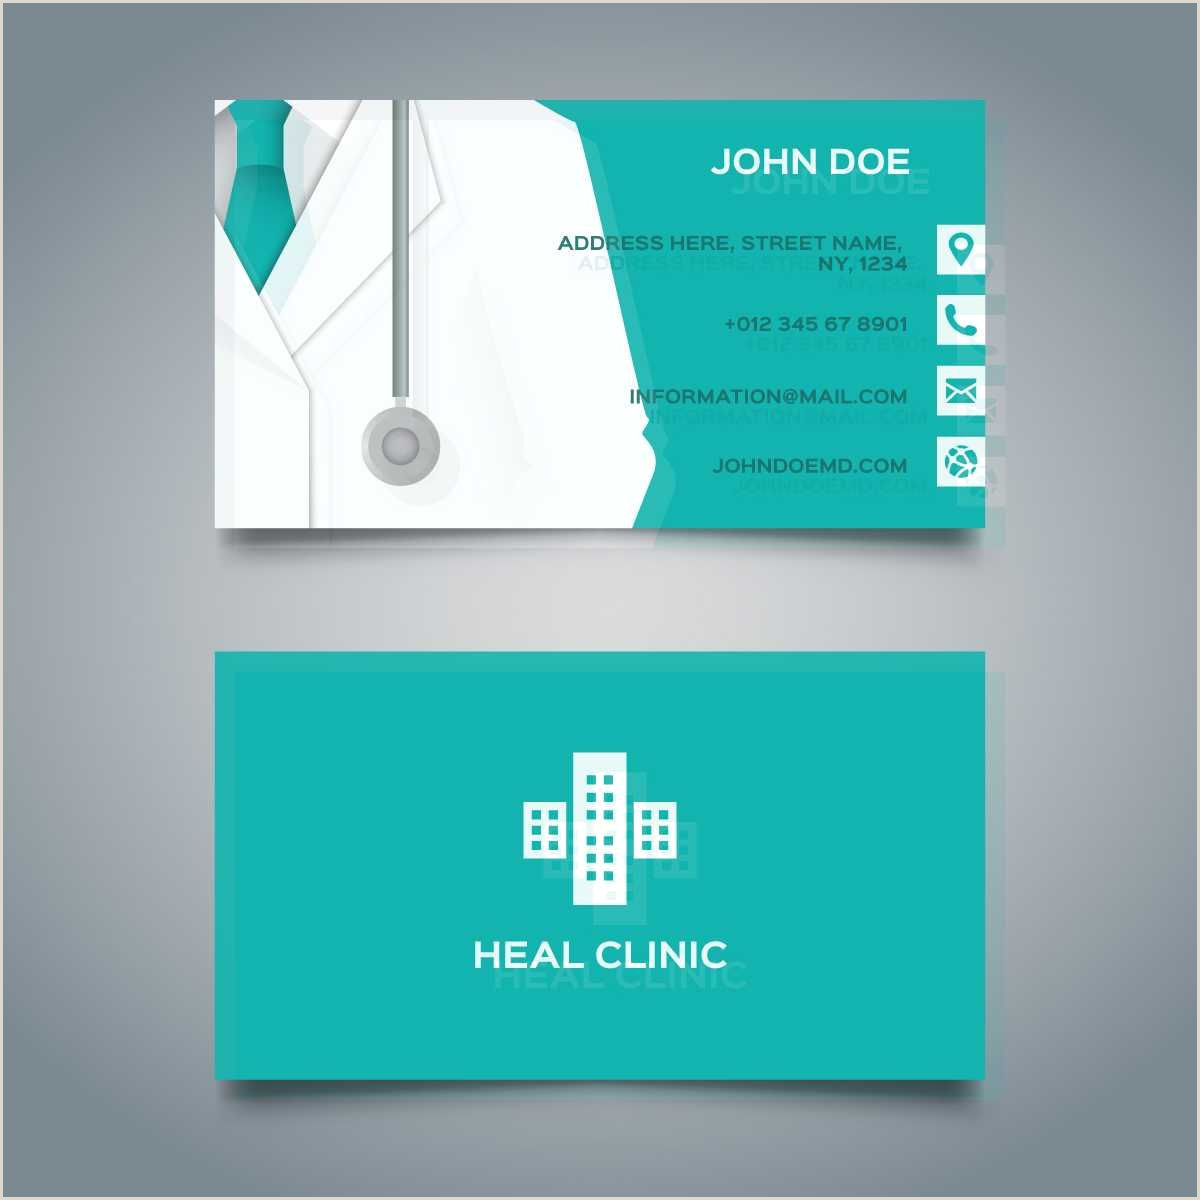 I Need To Make Business Cards Blue Medical Card Free